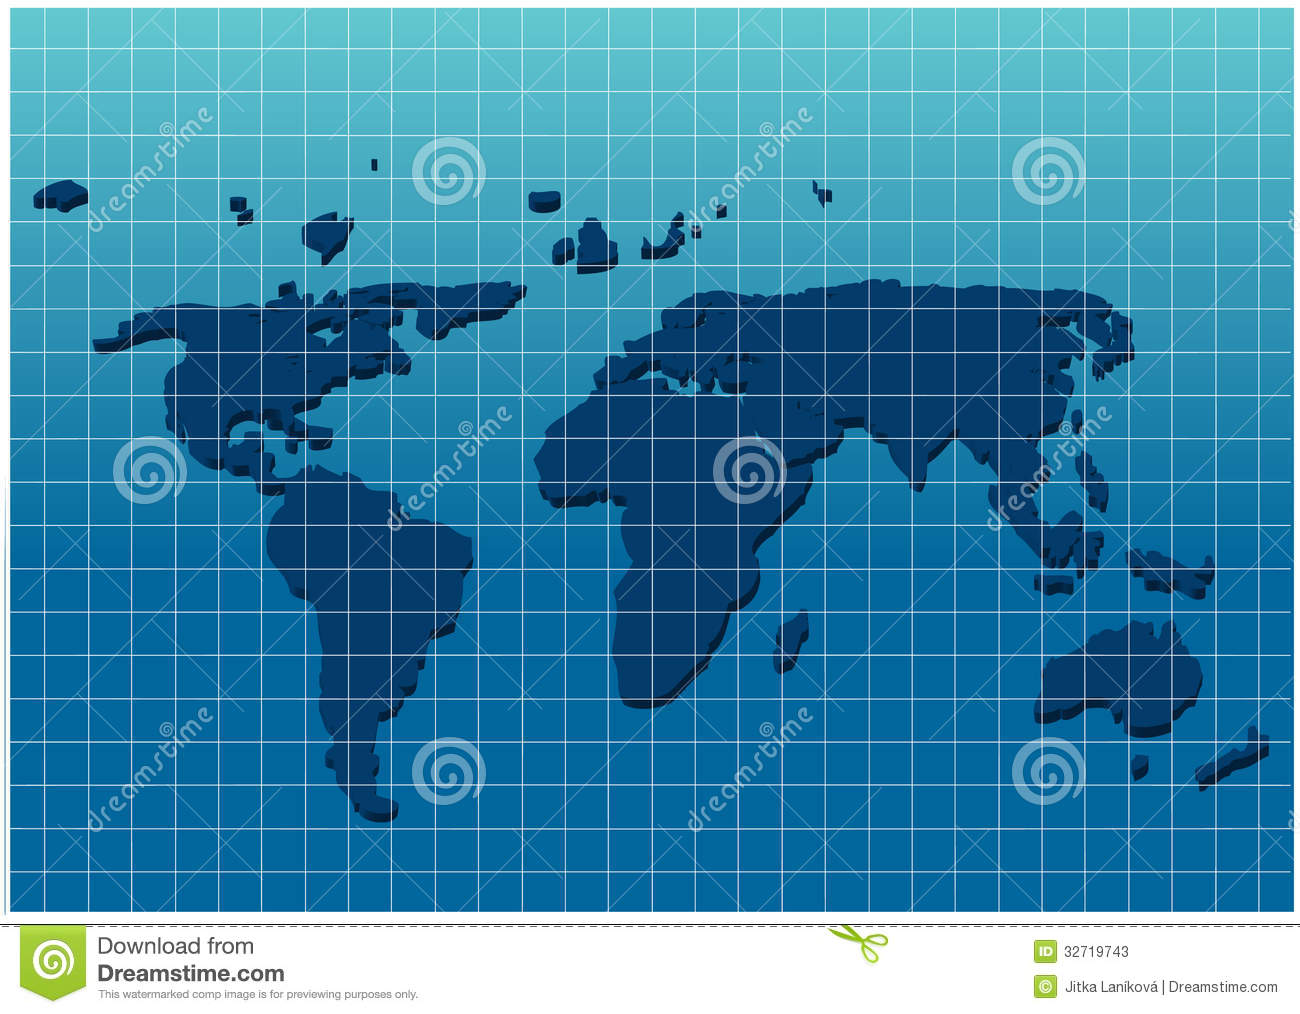 Dimensional world map on grid paper stock vector illustration of dimensional world map on grid paper gumiabroncs Images